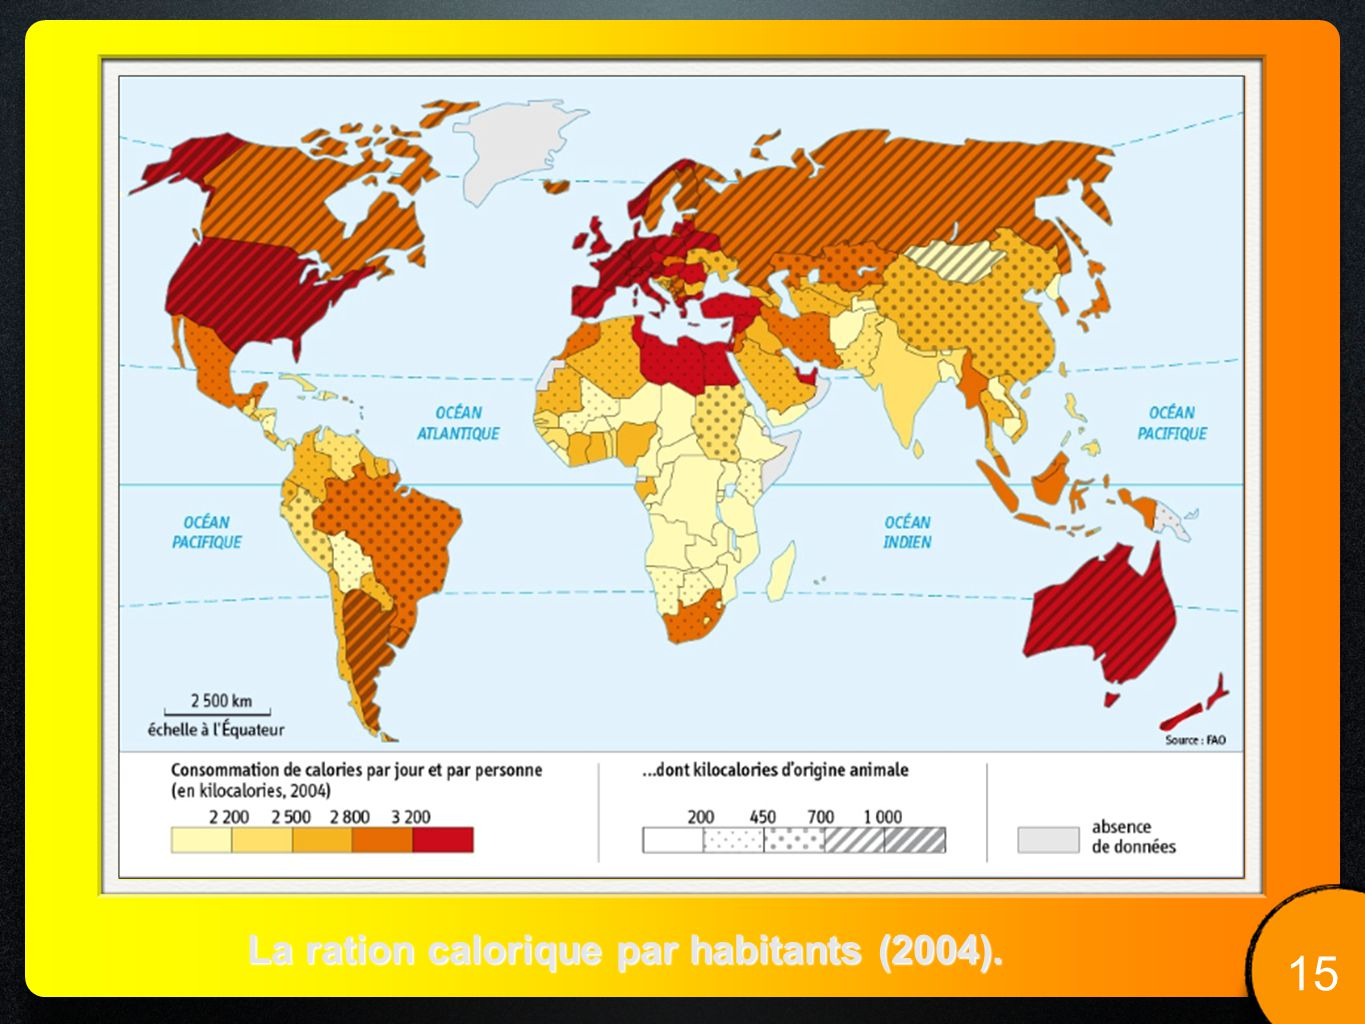 La ration calorique par habitants (2004).